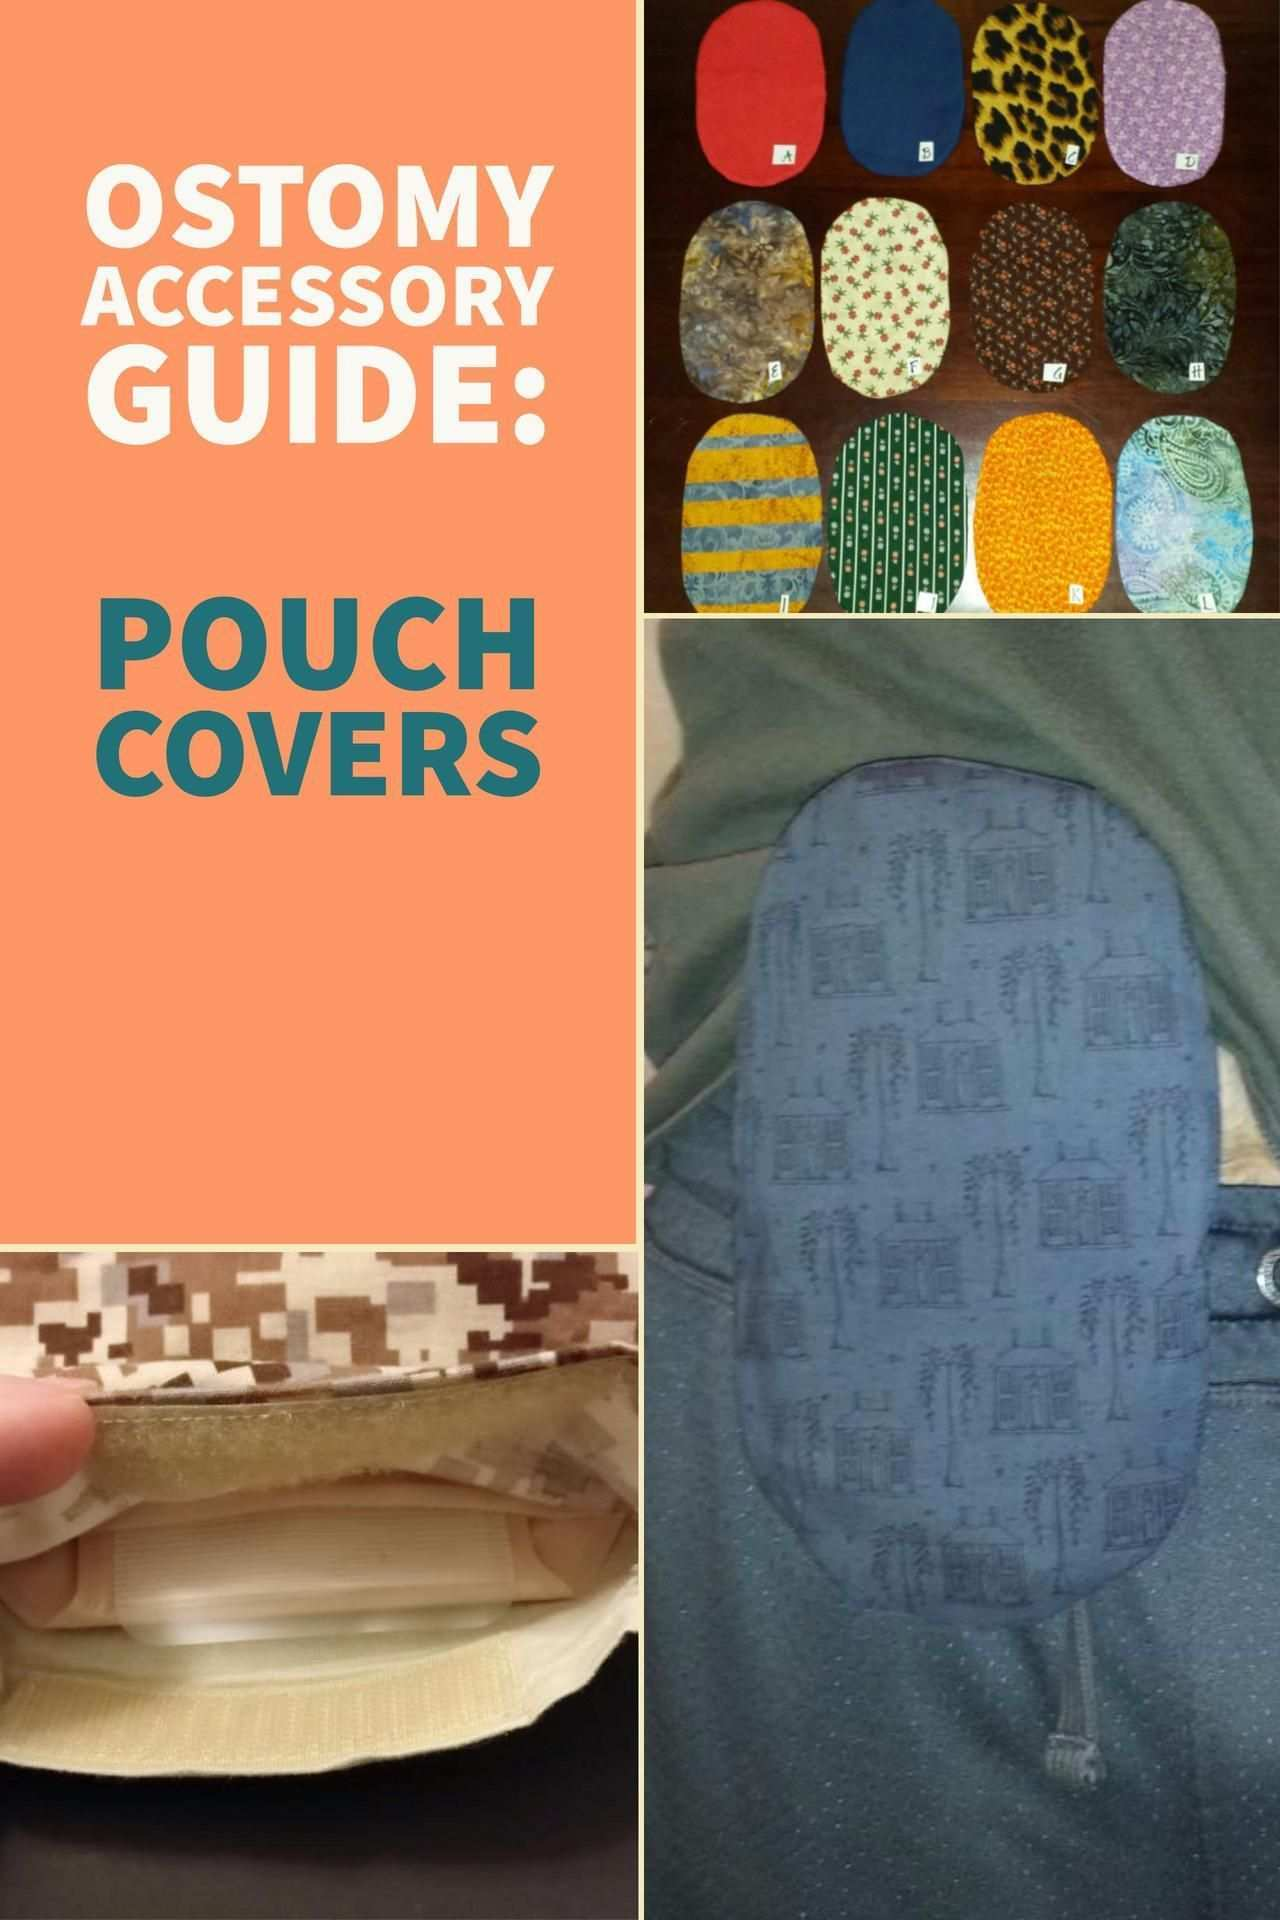 Ostomy Accessories Guide Pouch Covers Veganostomy Colostomy Bag Covers Ostomy Ileostomy Bag